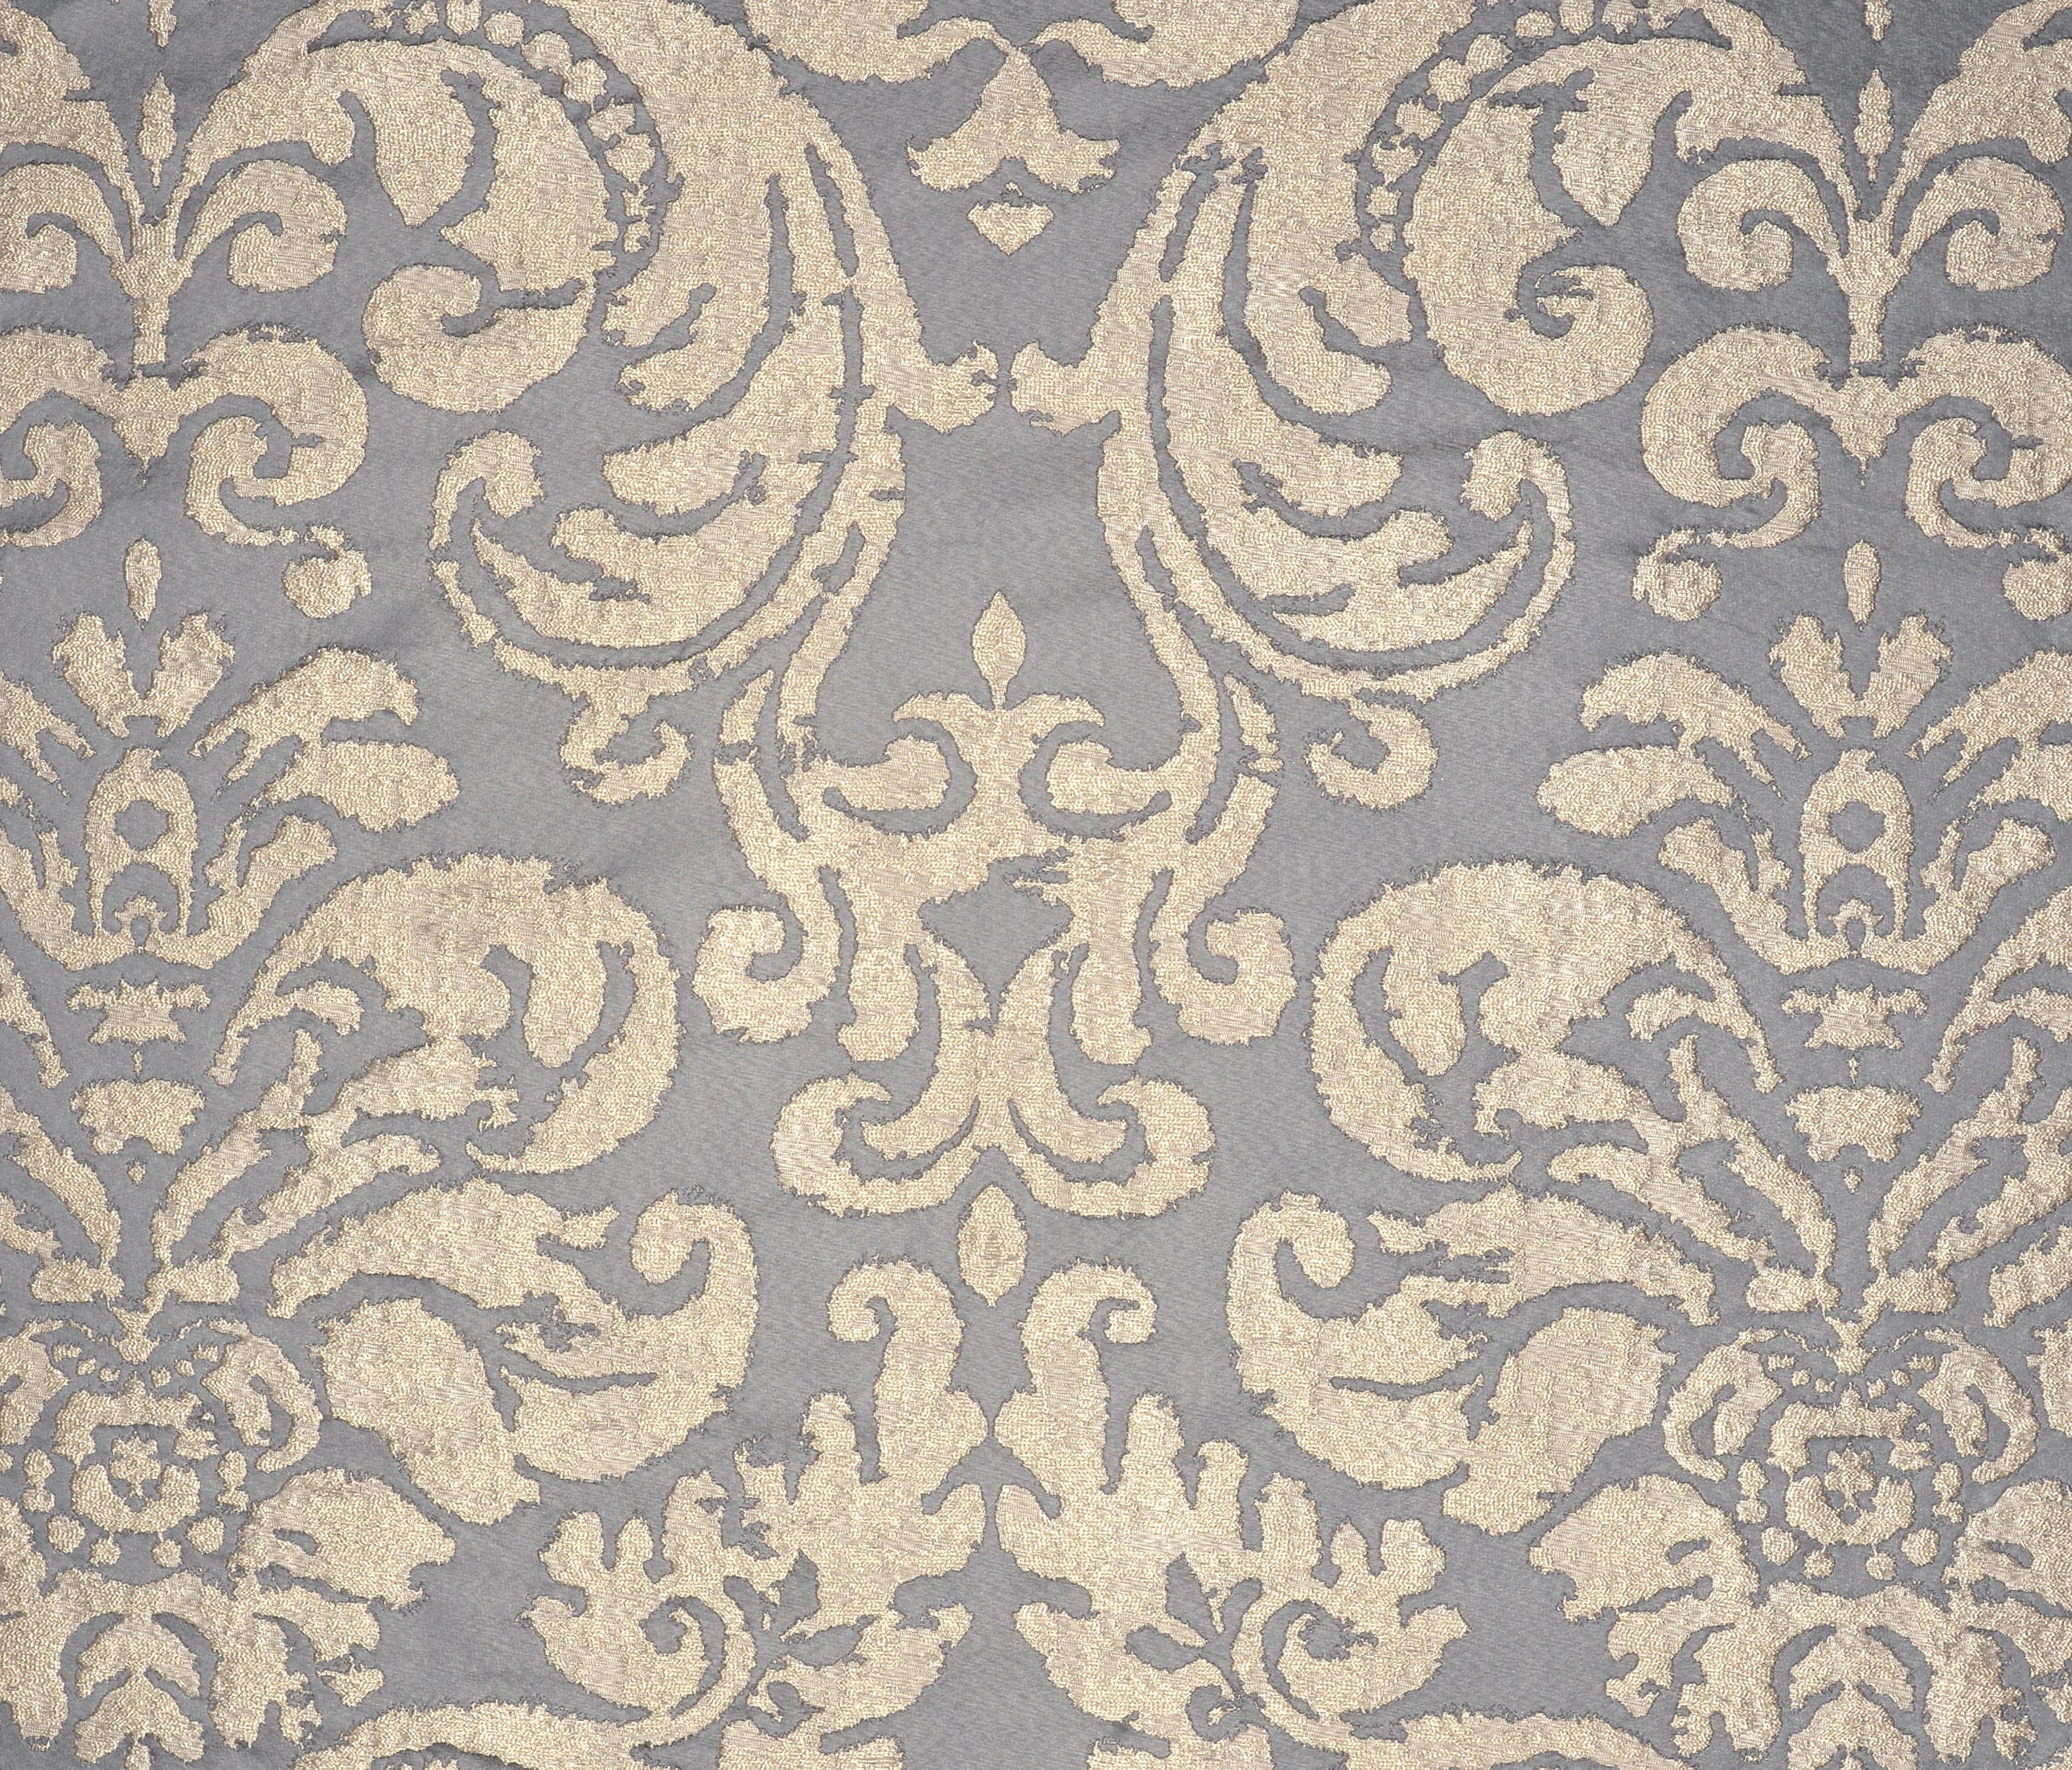 Sahco Hesslein Luxurious Silk Damask Fabric Brocade Donghia Sahco Palazzo Available By The Yard